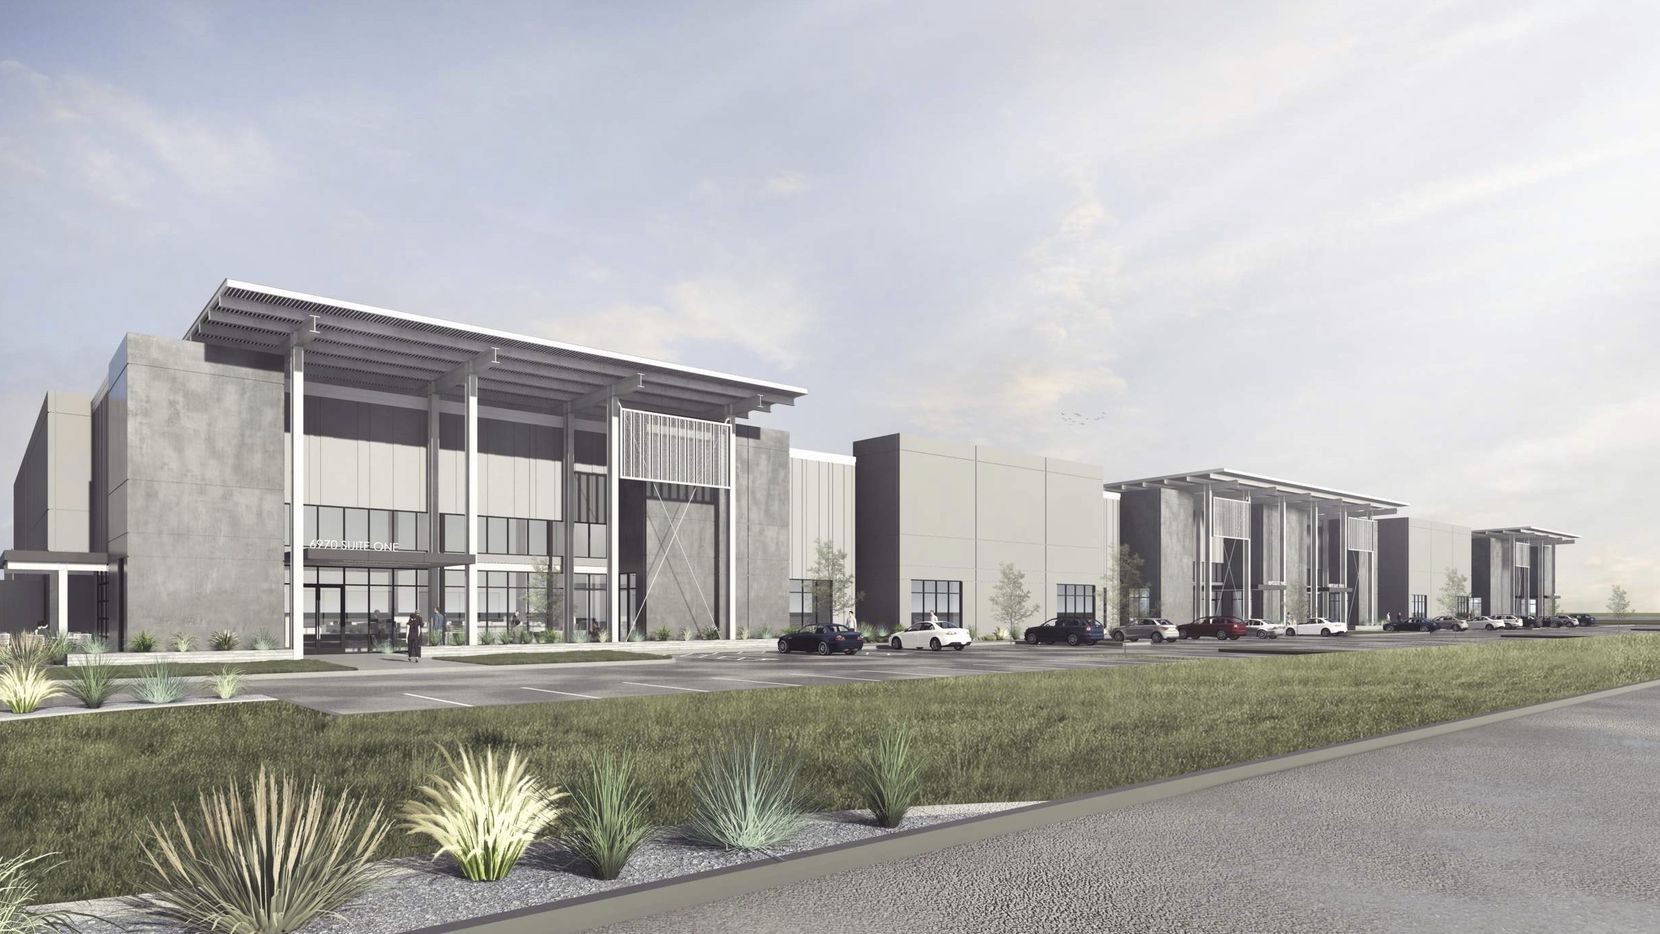 Urban Logistics plans three buildings in the Euless business park.